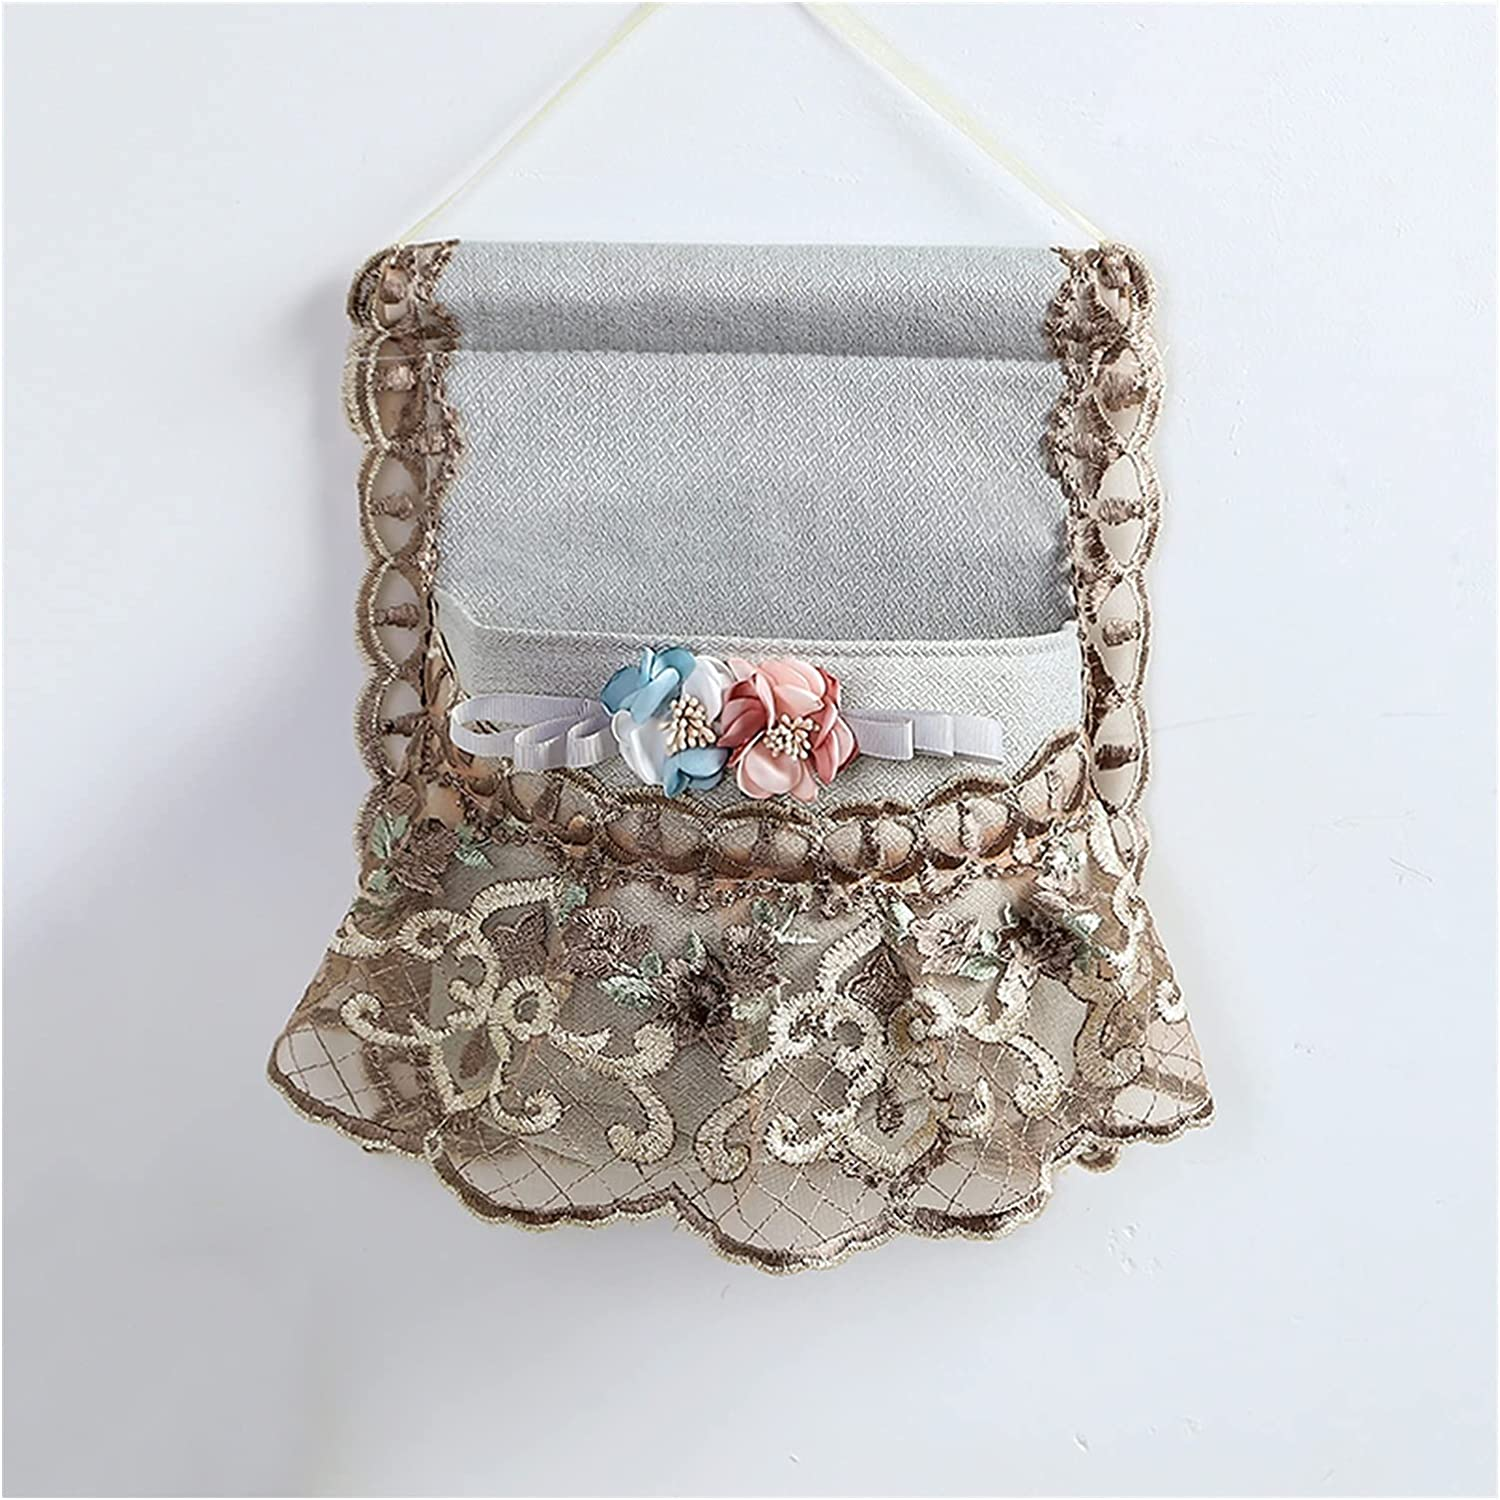 LEI789LL Wall Hanging Storage Bag Door Oklahoma City Mall Organizer Soldering The Over